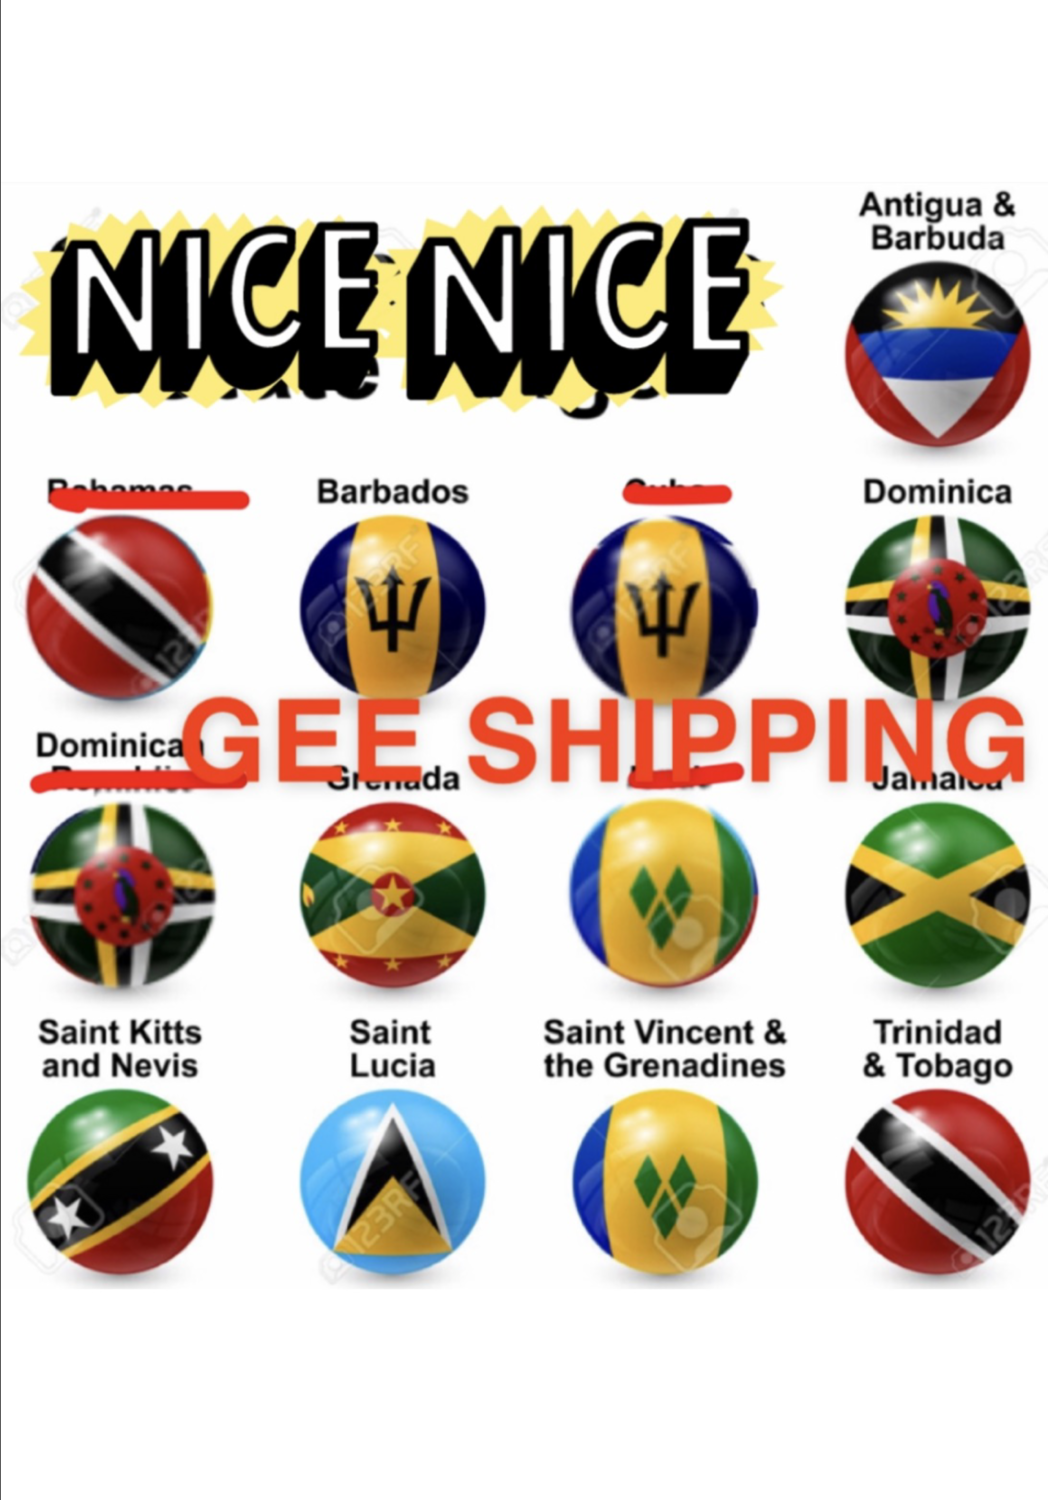 PRODUCT (15) Ship 1 Barrel to Dominica, St Lucia, Antigua, St Kitts, Guyana, Barbados, Trinidad, Grenada and St Vincent. (barrel is not included) FREE pick up only in London and (1) Free Lock.